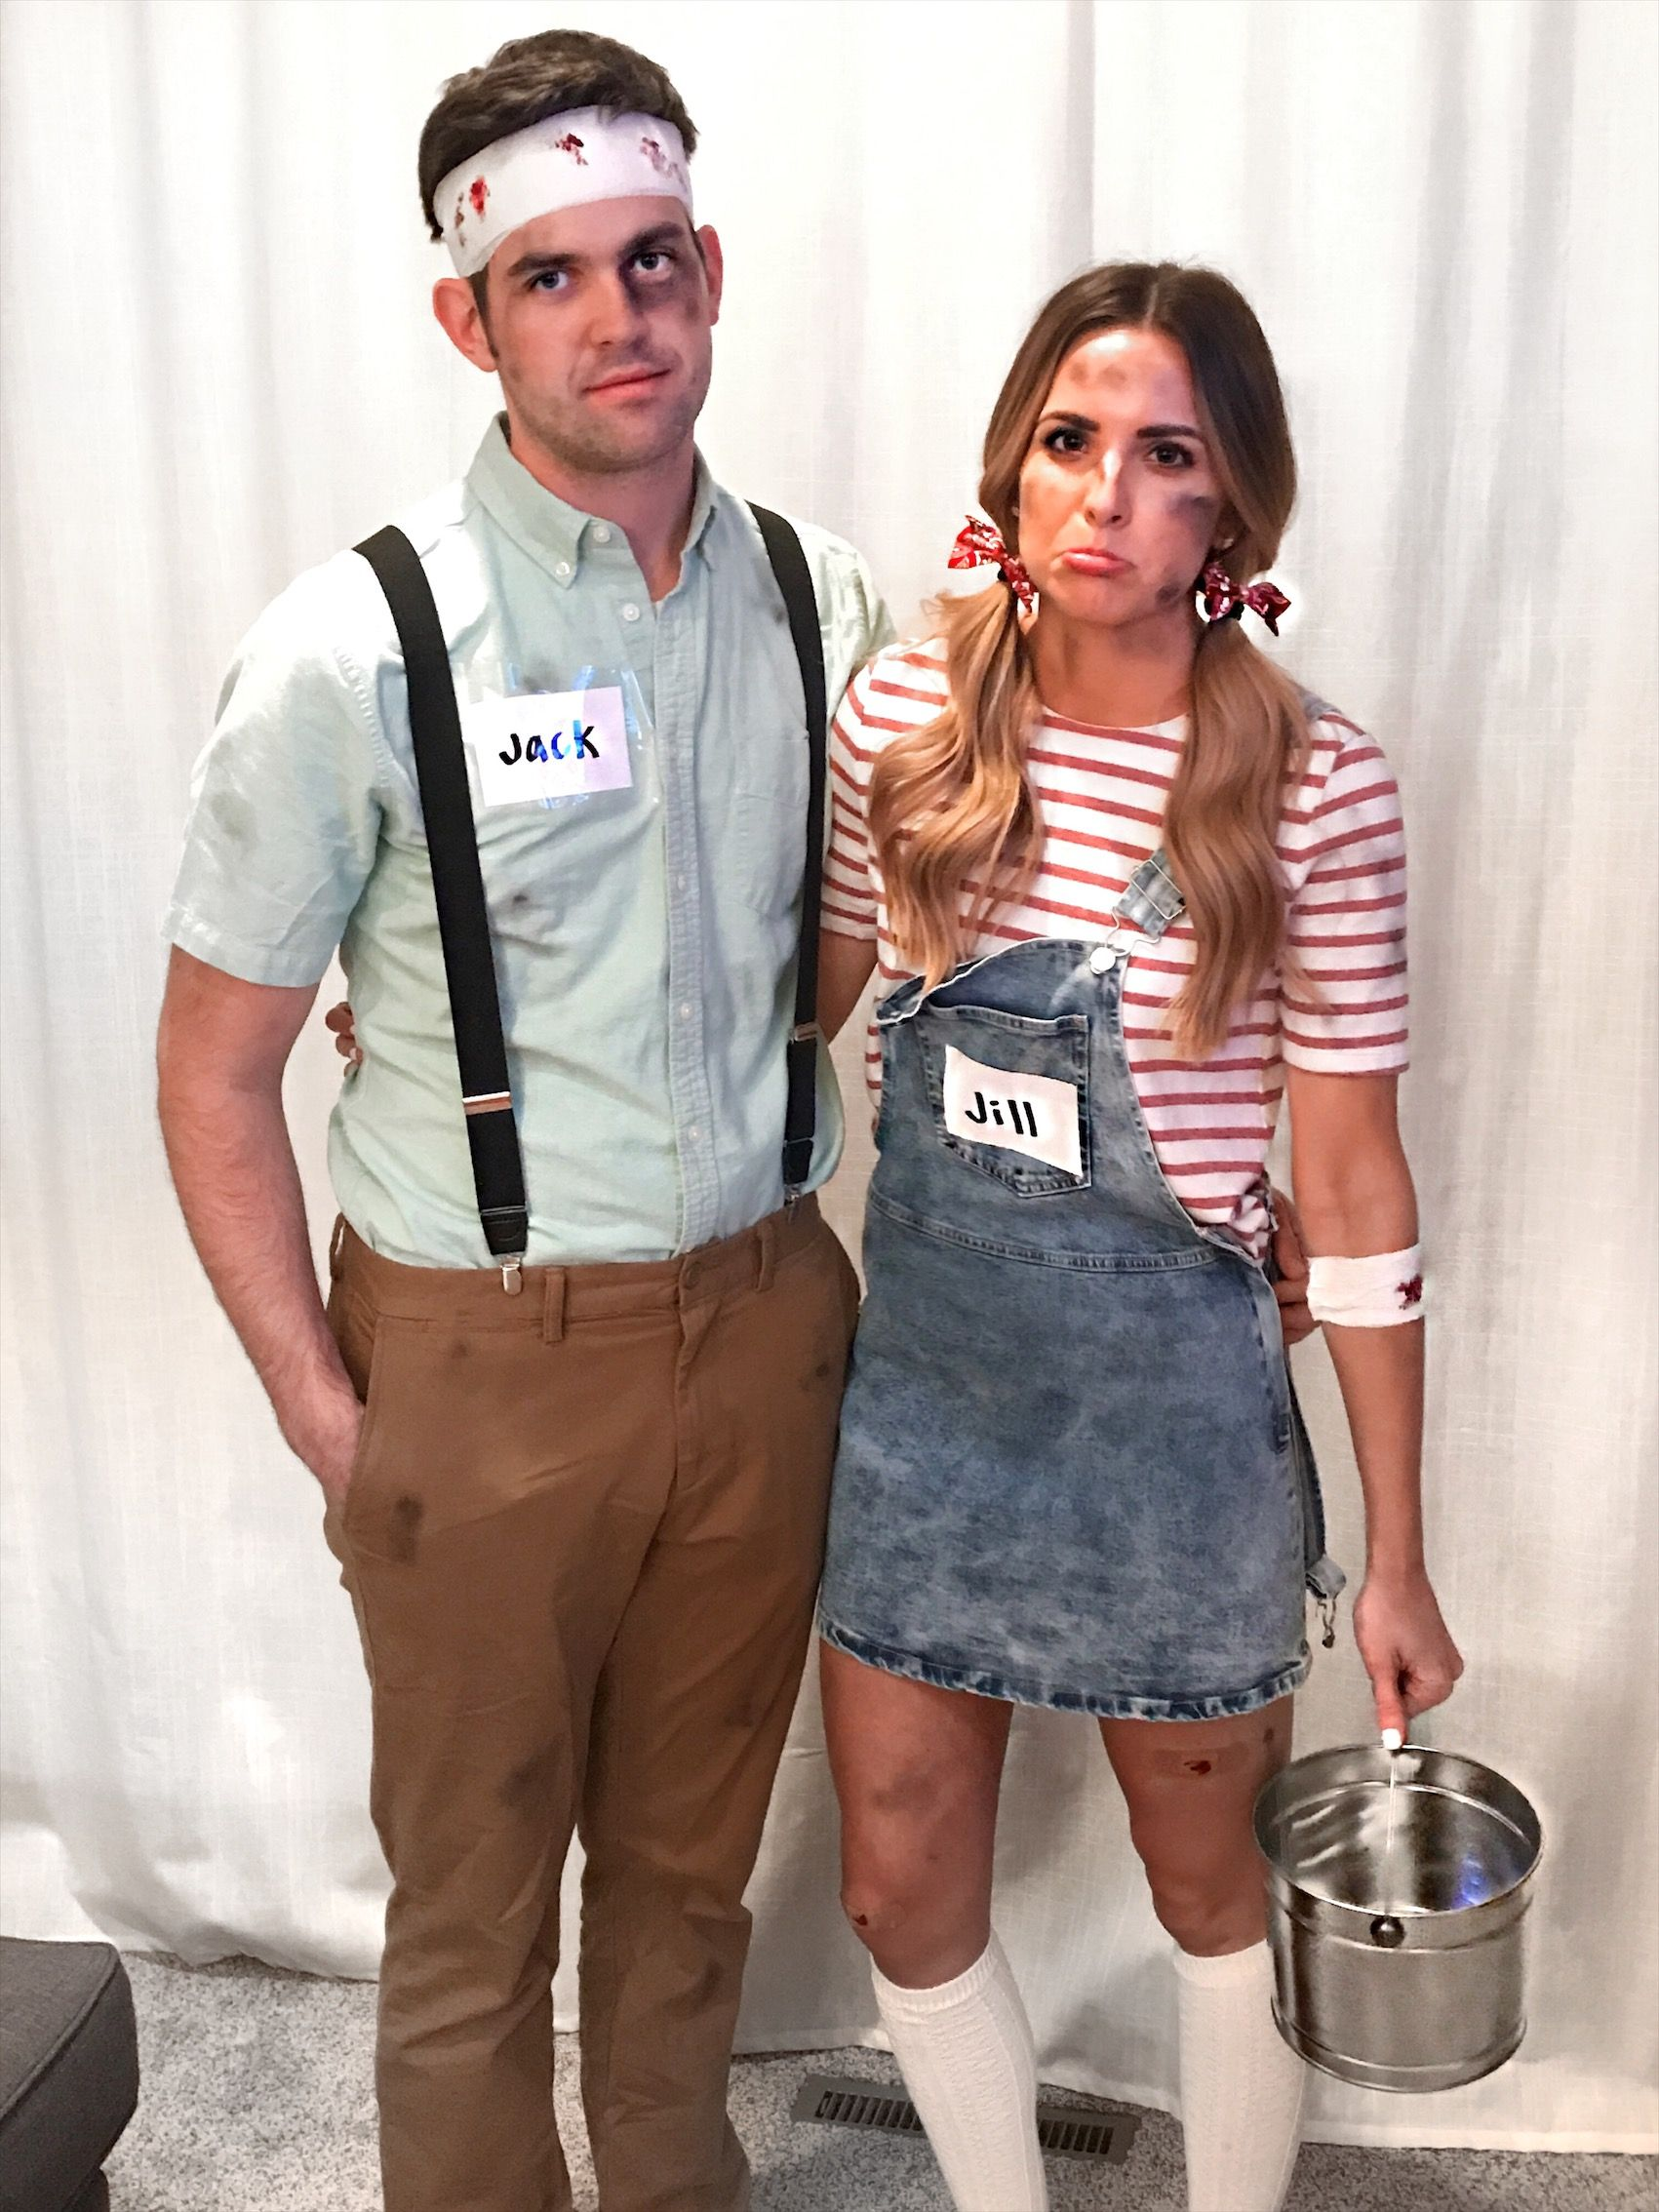 Jack and Jill / Easy Halloween Costume / Couples Costume